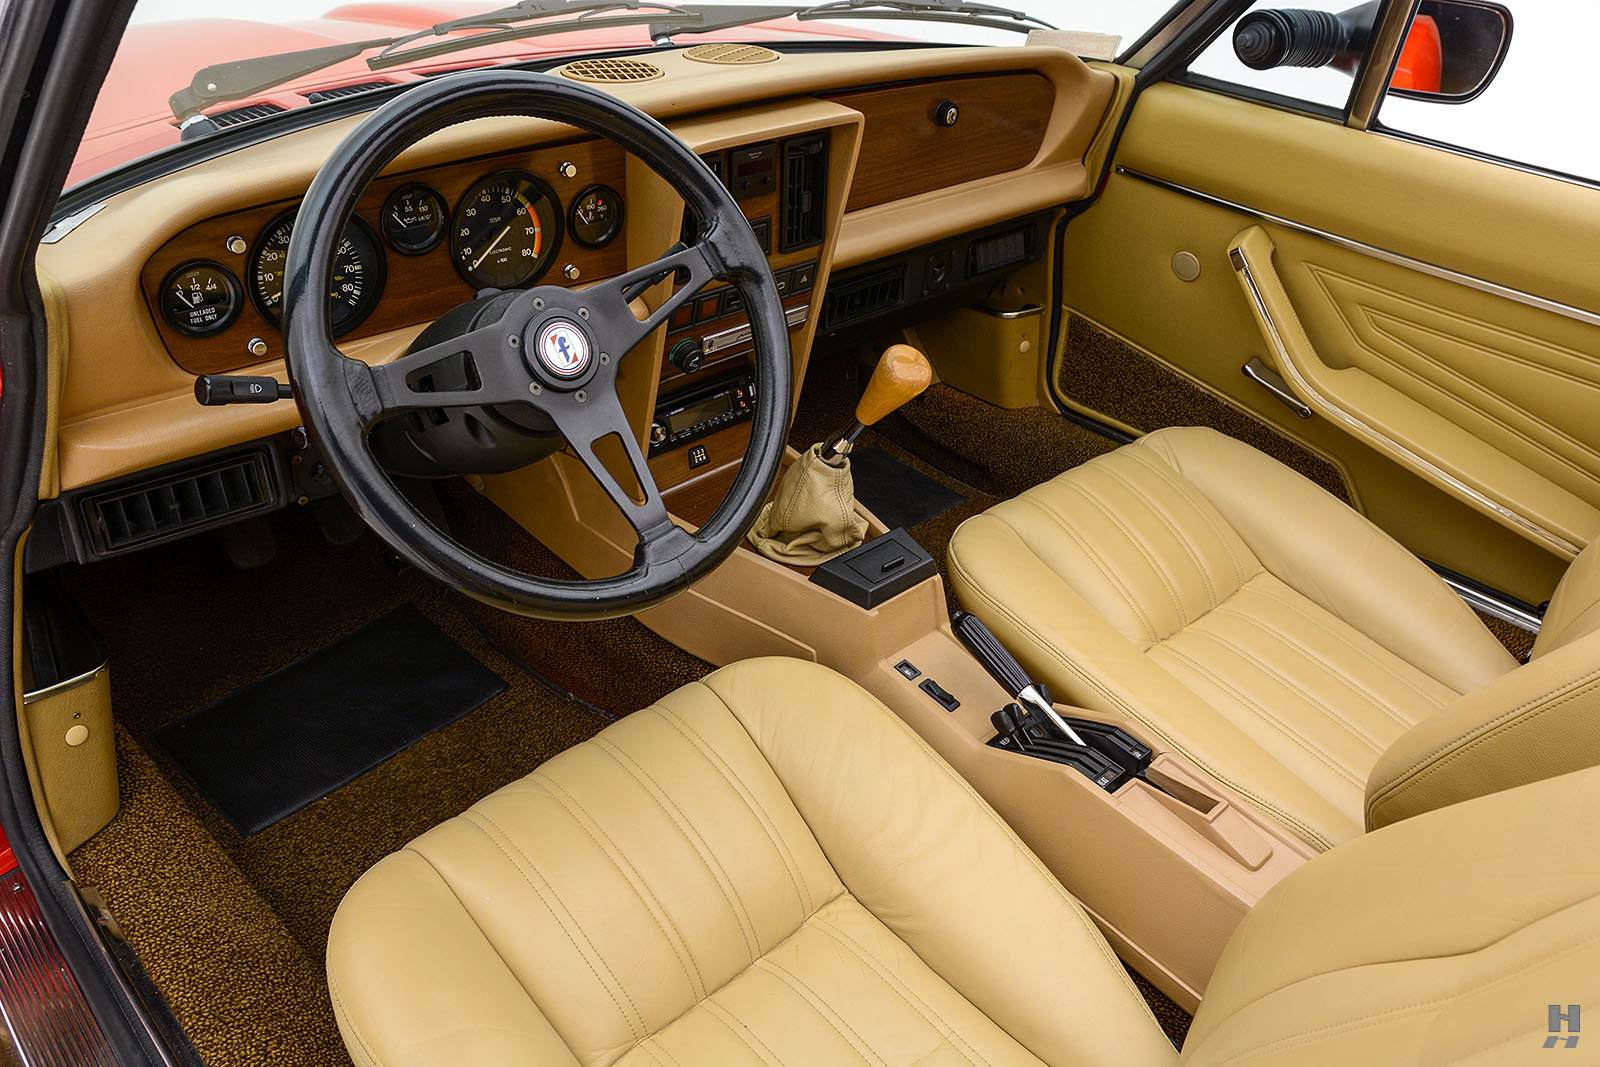 1984 PININFARINA SPIDER AZZURRA CABRIOLET For Sale (picture 4 of 6)